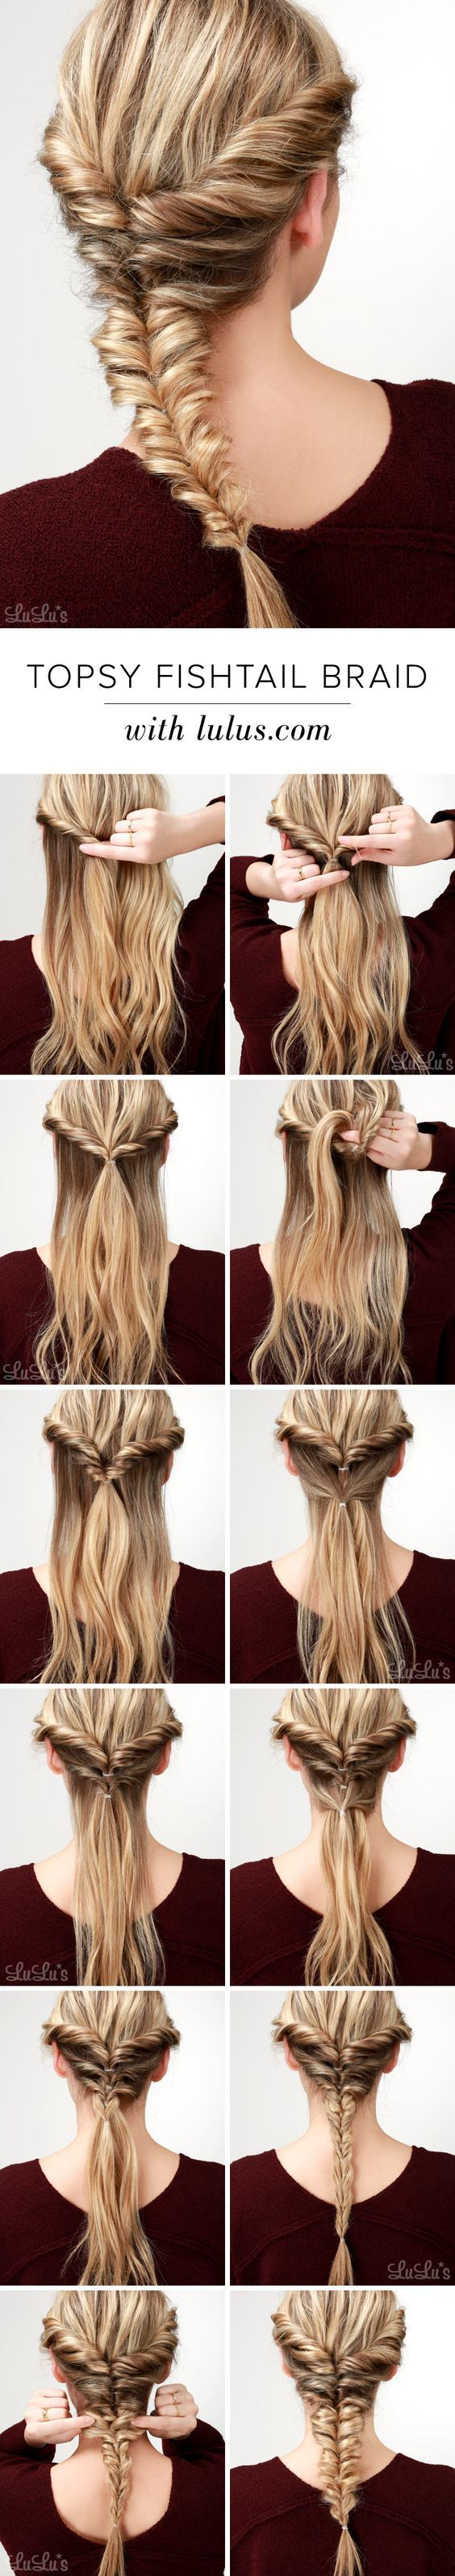 30 Amazing Braided Hairstyles for Medium   Long Hair     Delightful     Braids   Braided Hairstyles